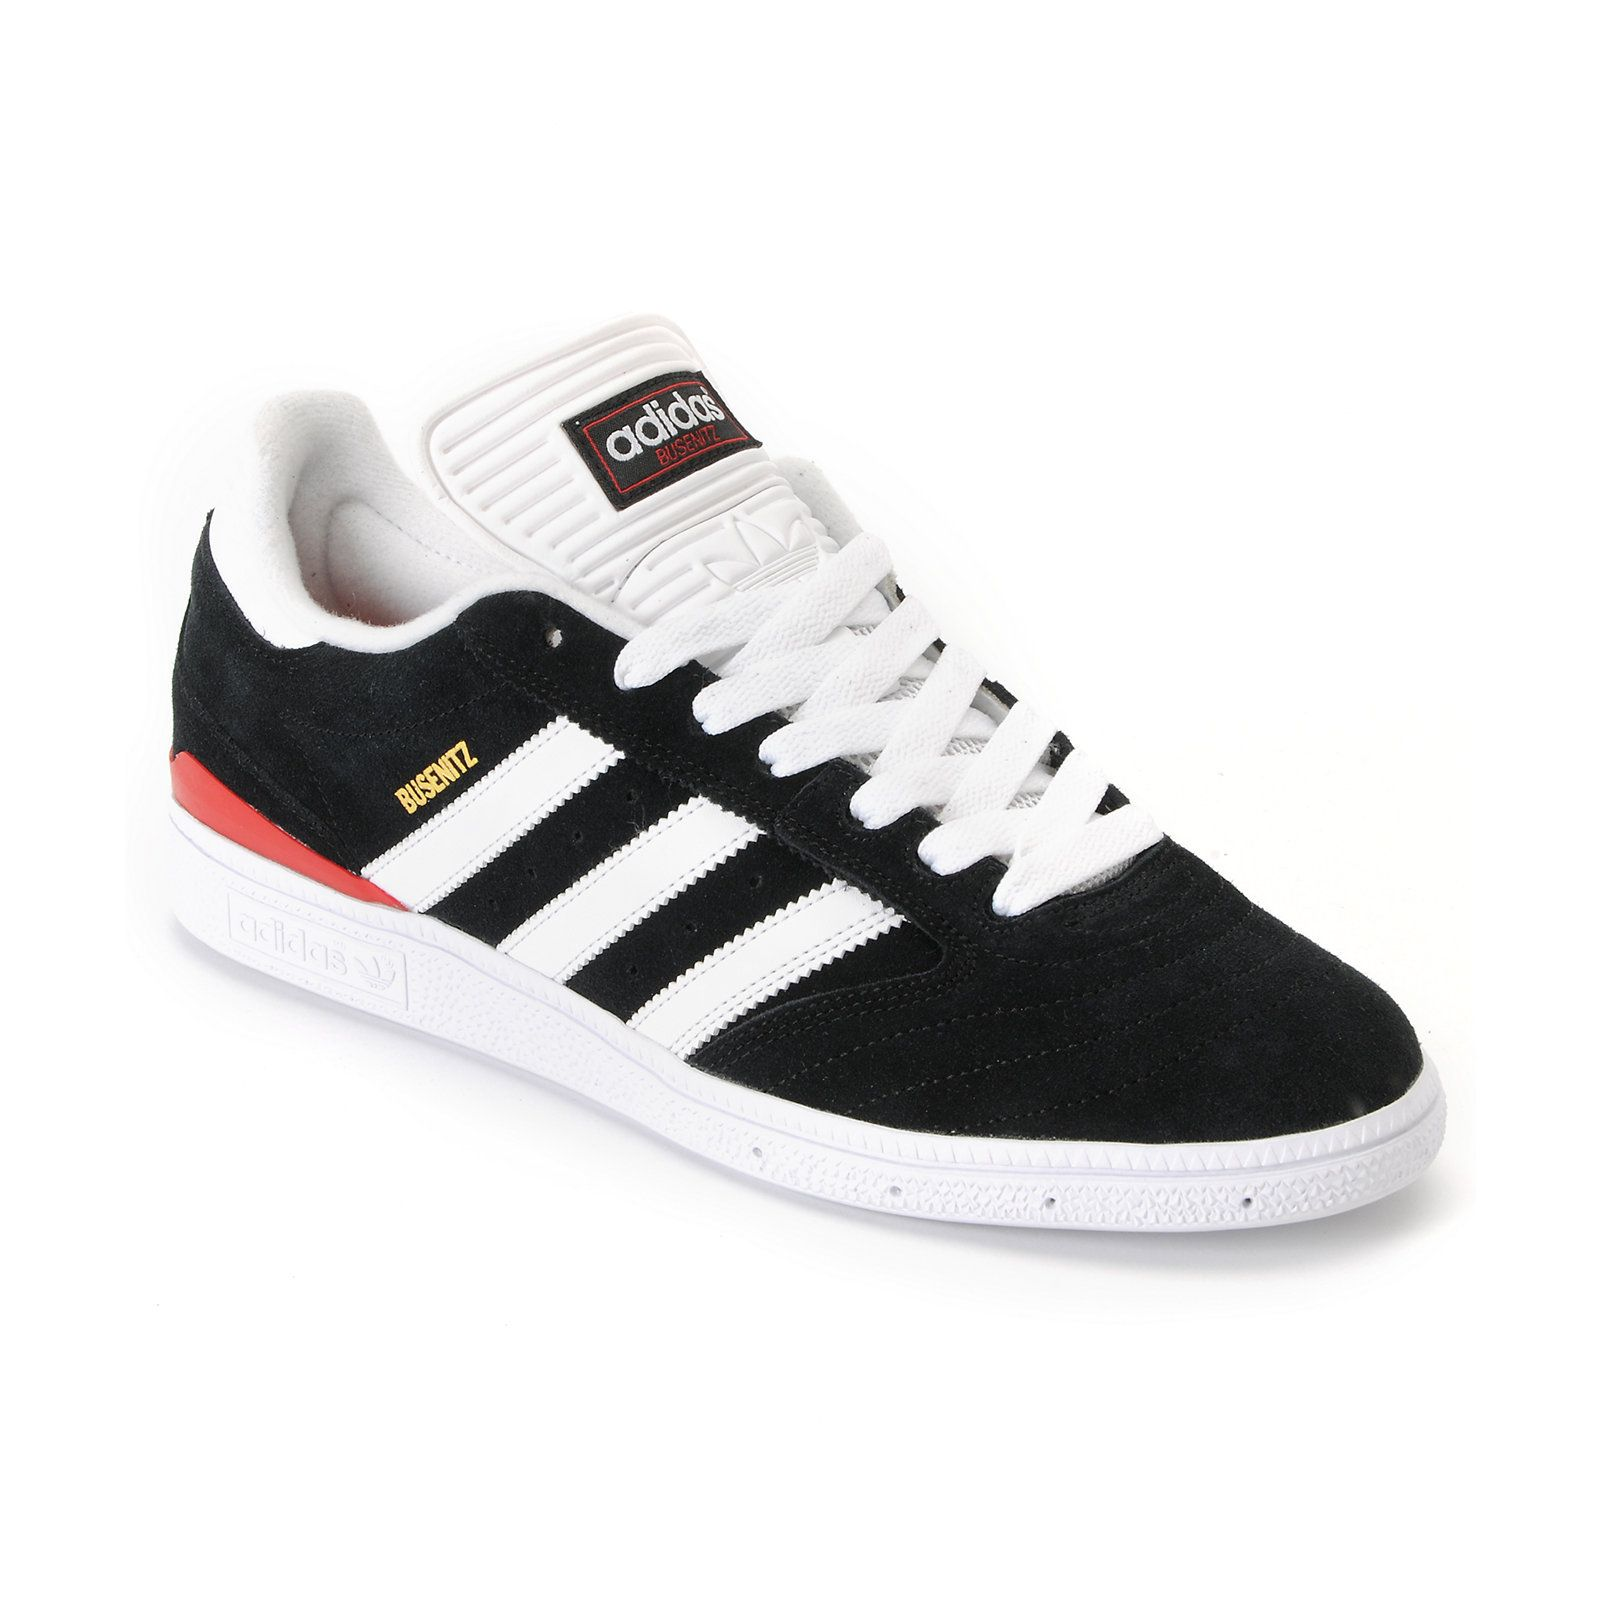 dab6062c0f46 Adidas Dennis Busenitz Black   University Red Skate Shoe